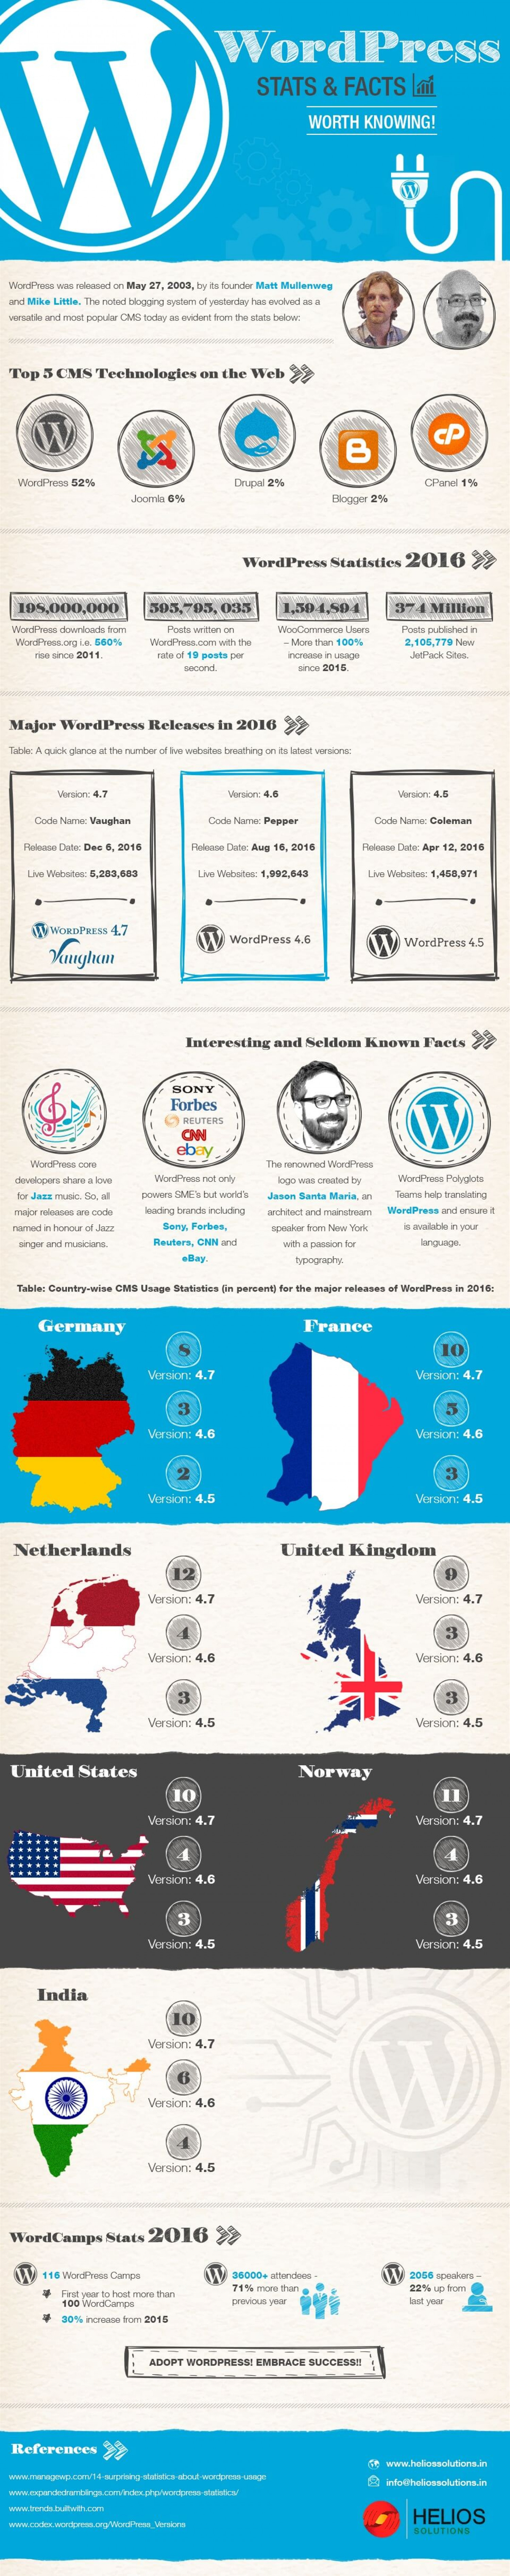 Embrace WordPress and Engage Your Customers Effectively Infographic